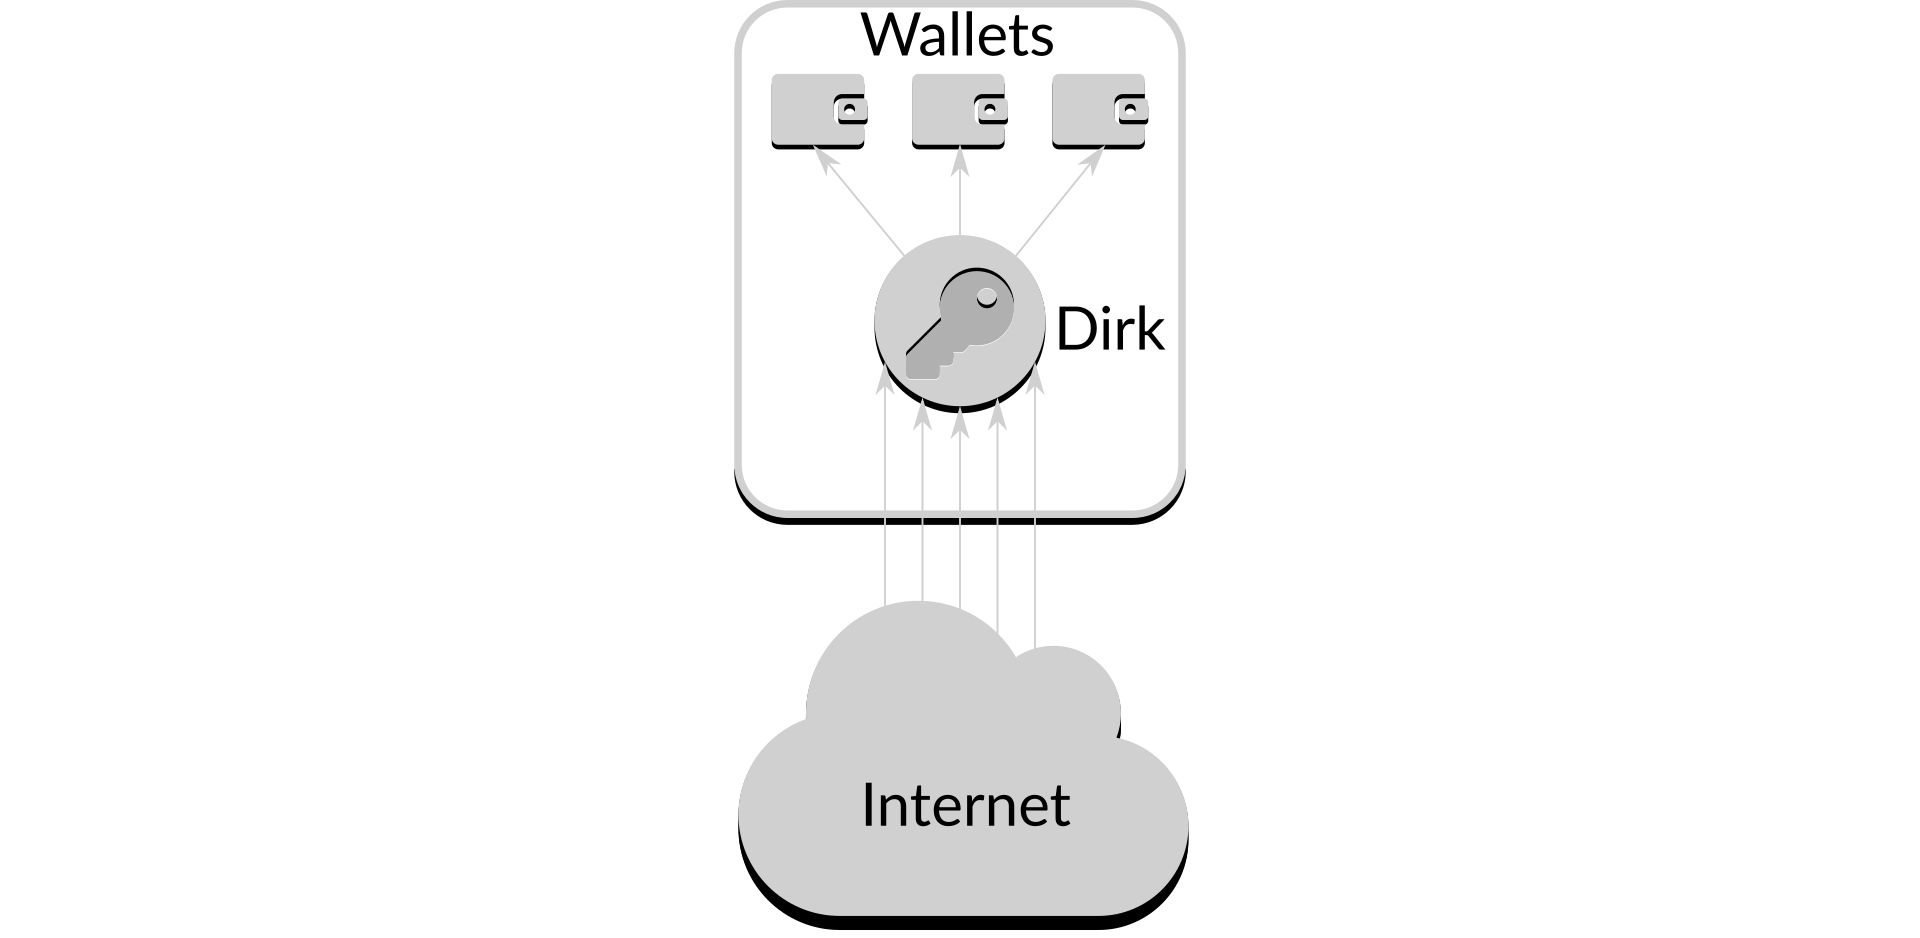 Network-enabled access